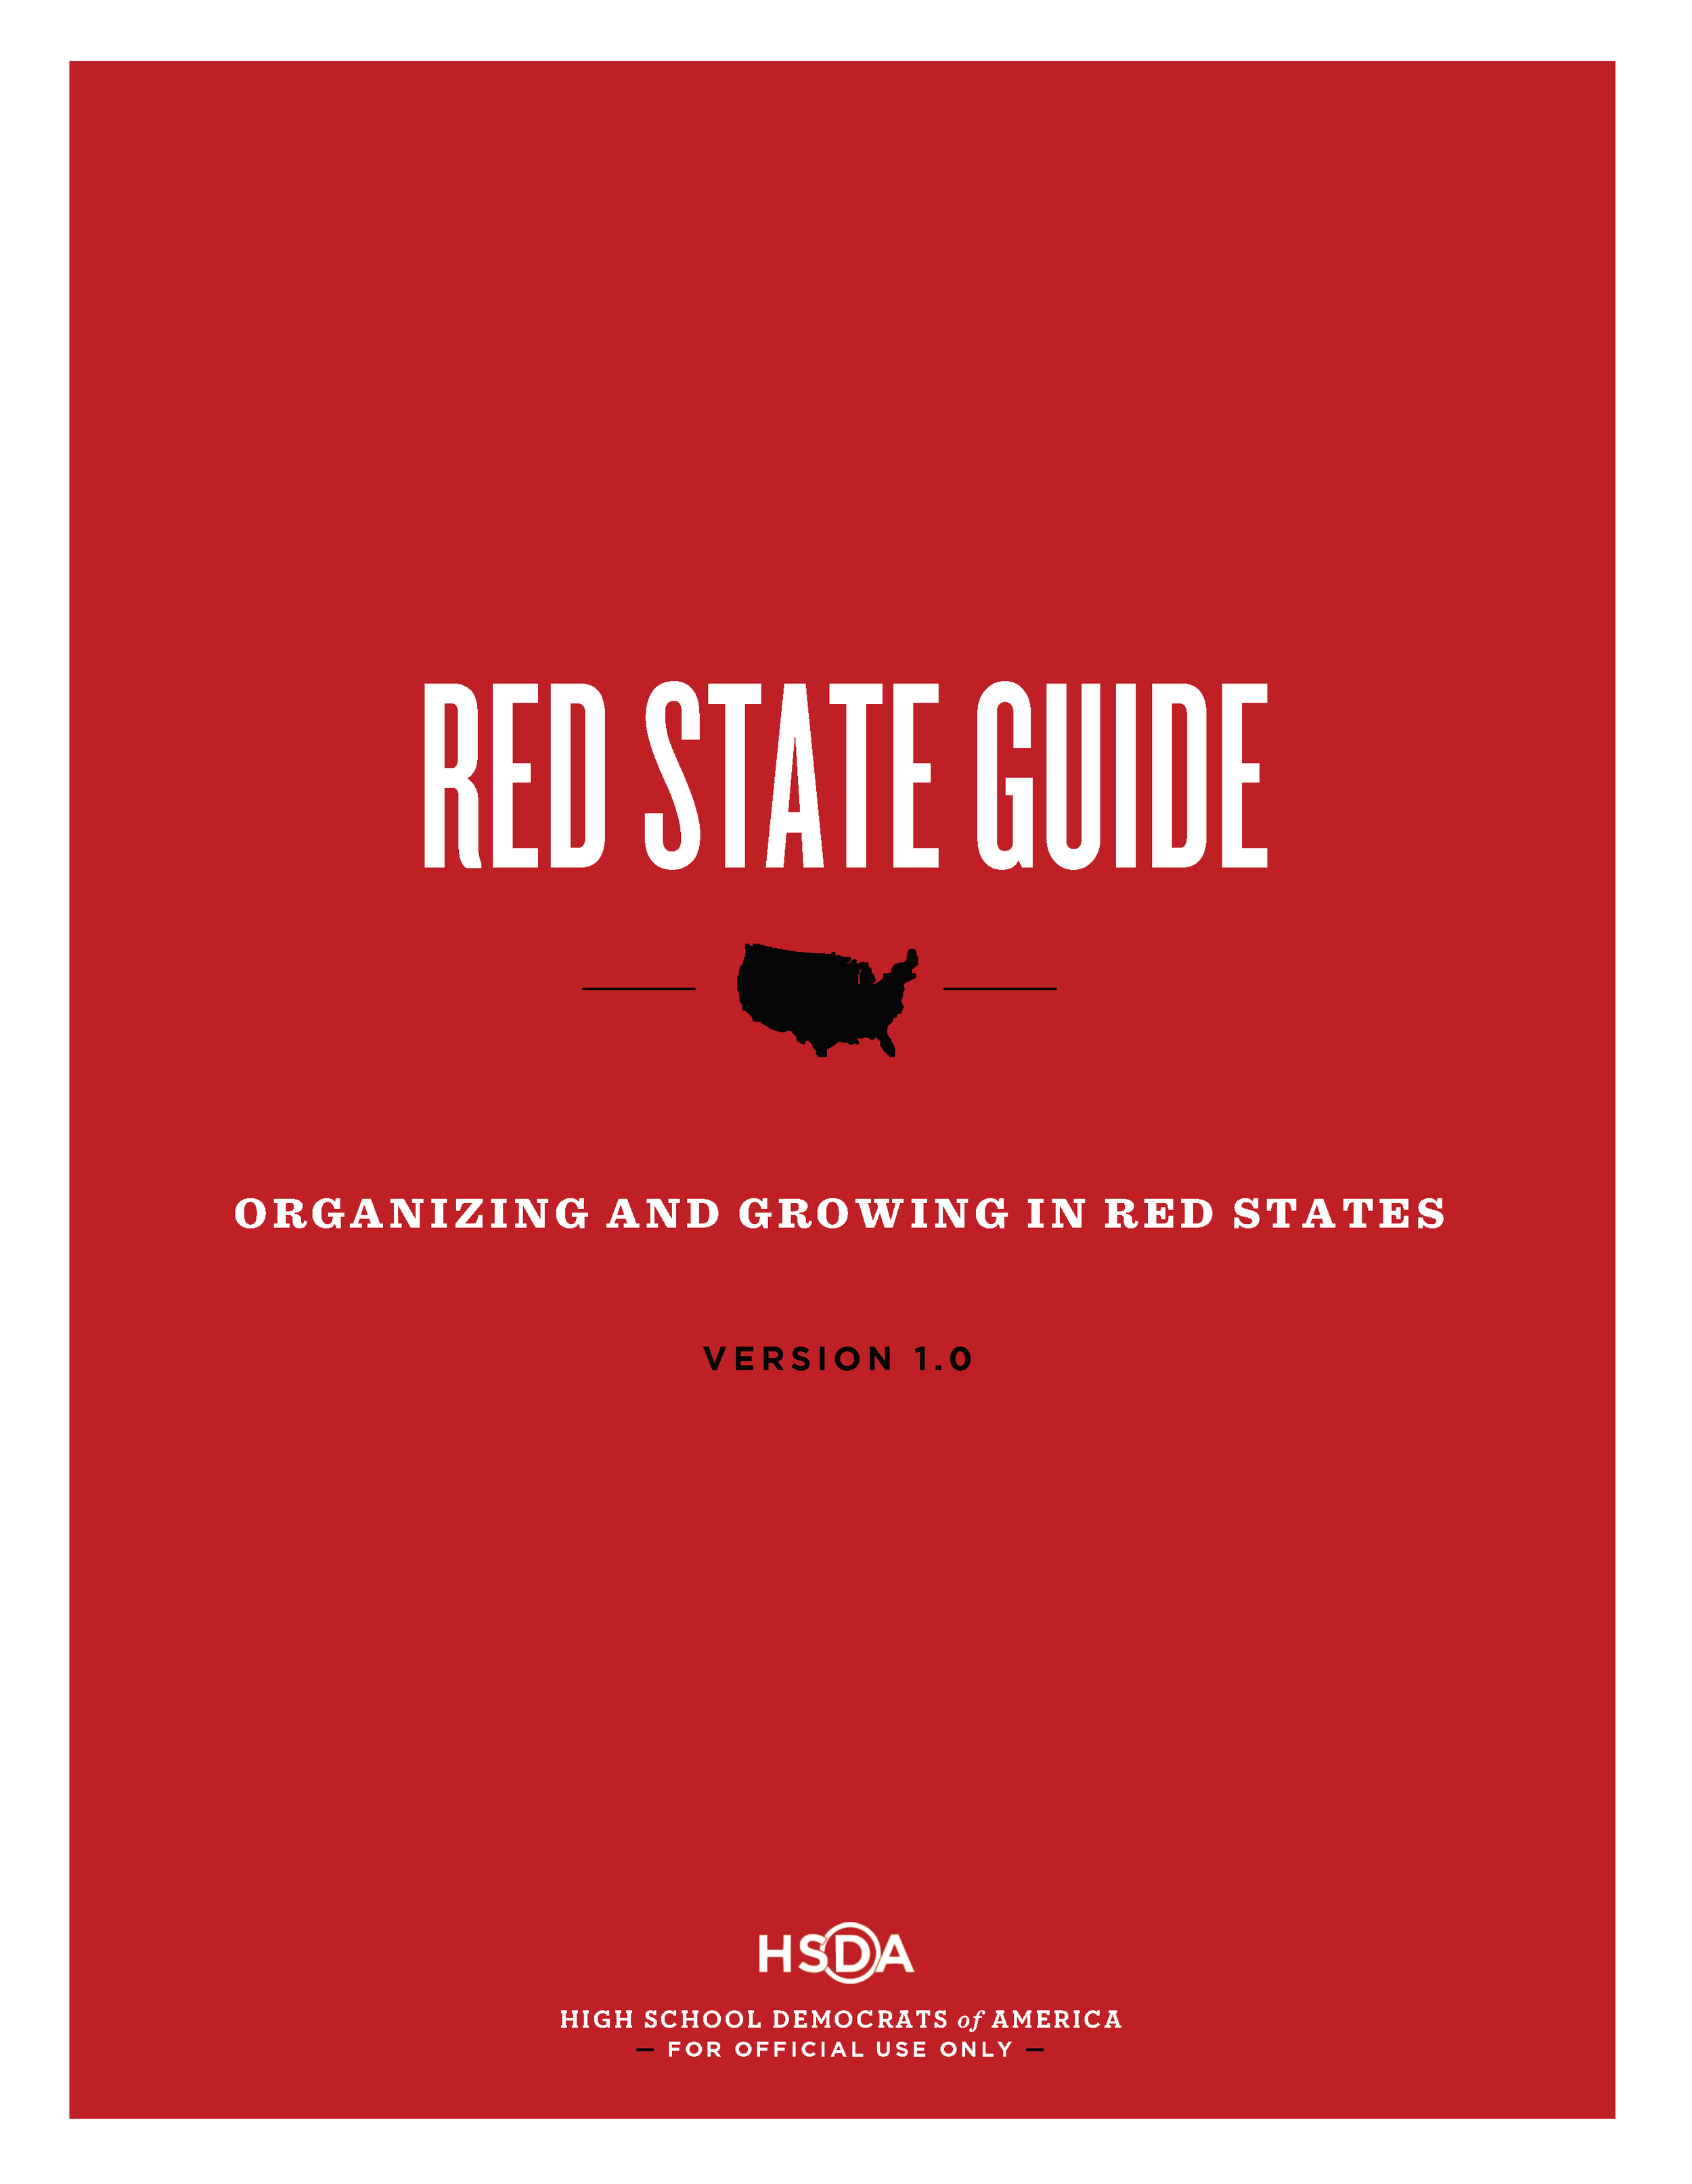 Red State Guide copy cover.png